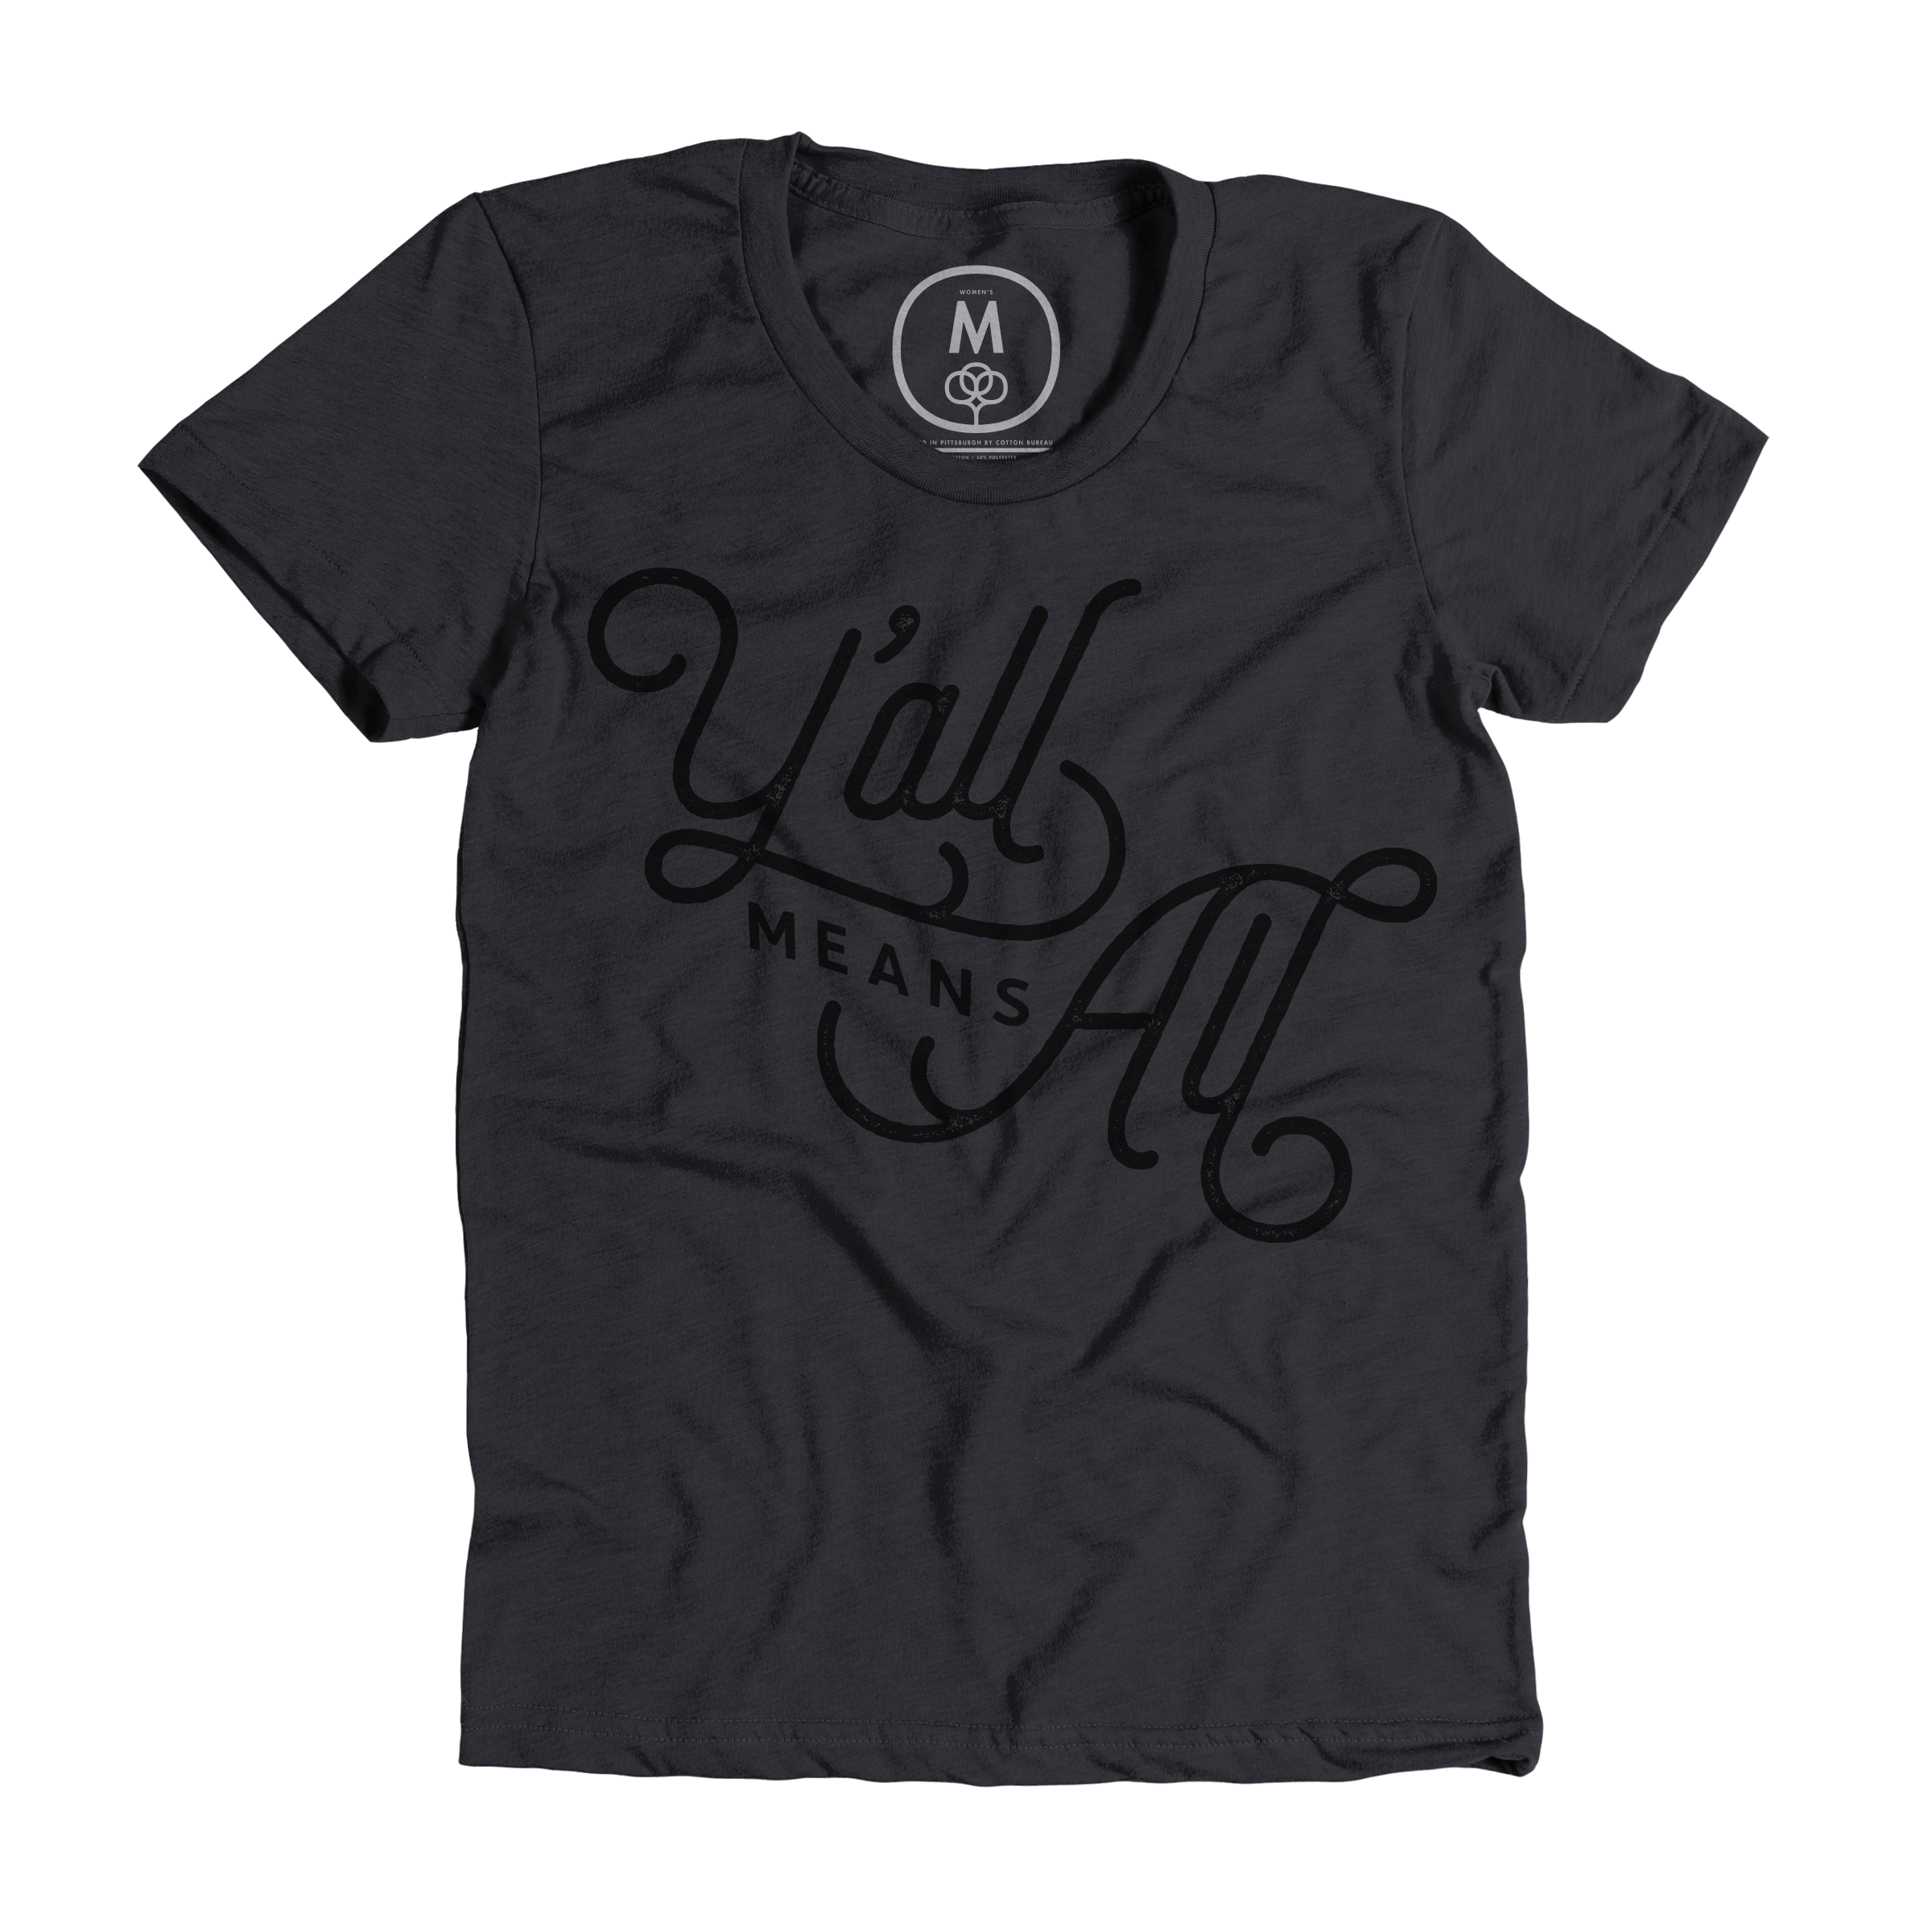 Y'all Means All Charcoal (Women's)